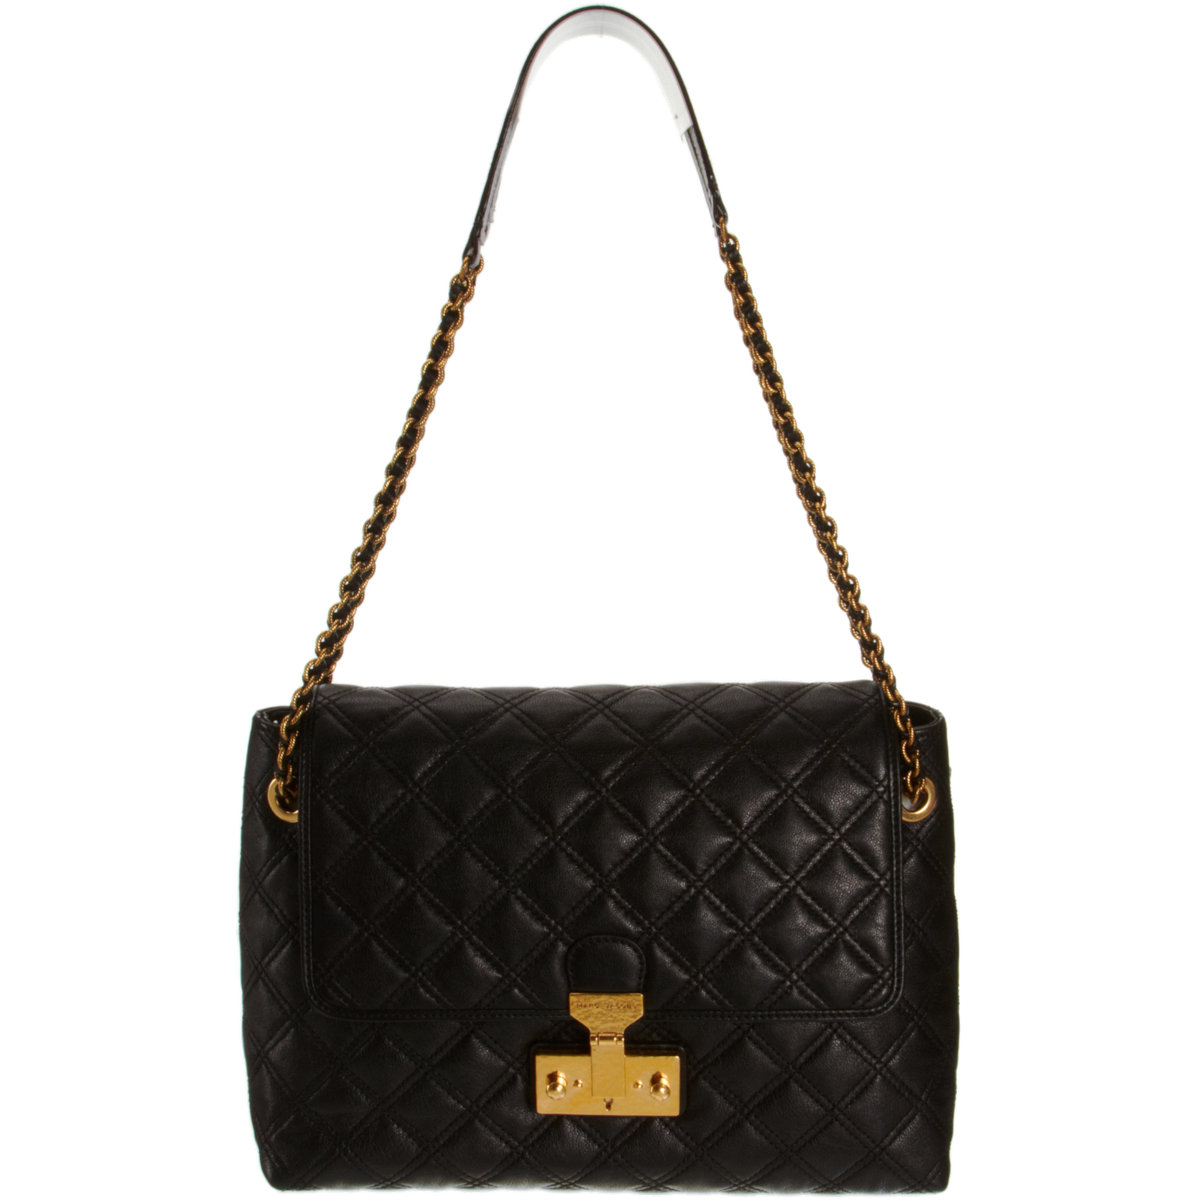 6de4ddf1b4ae Marc Jacobs Quilted Bag Black - Bag Photos and Wallpaper HD